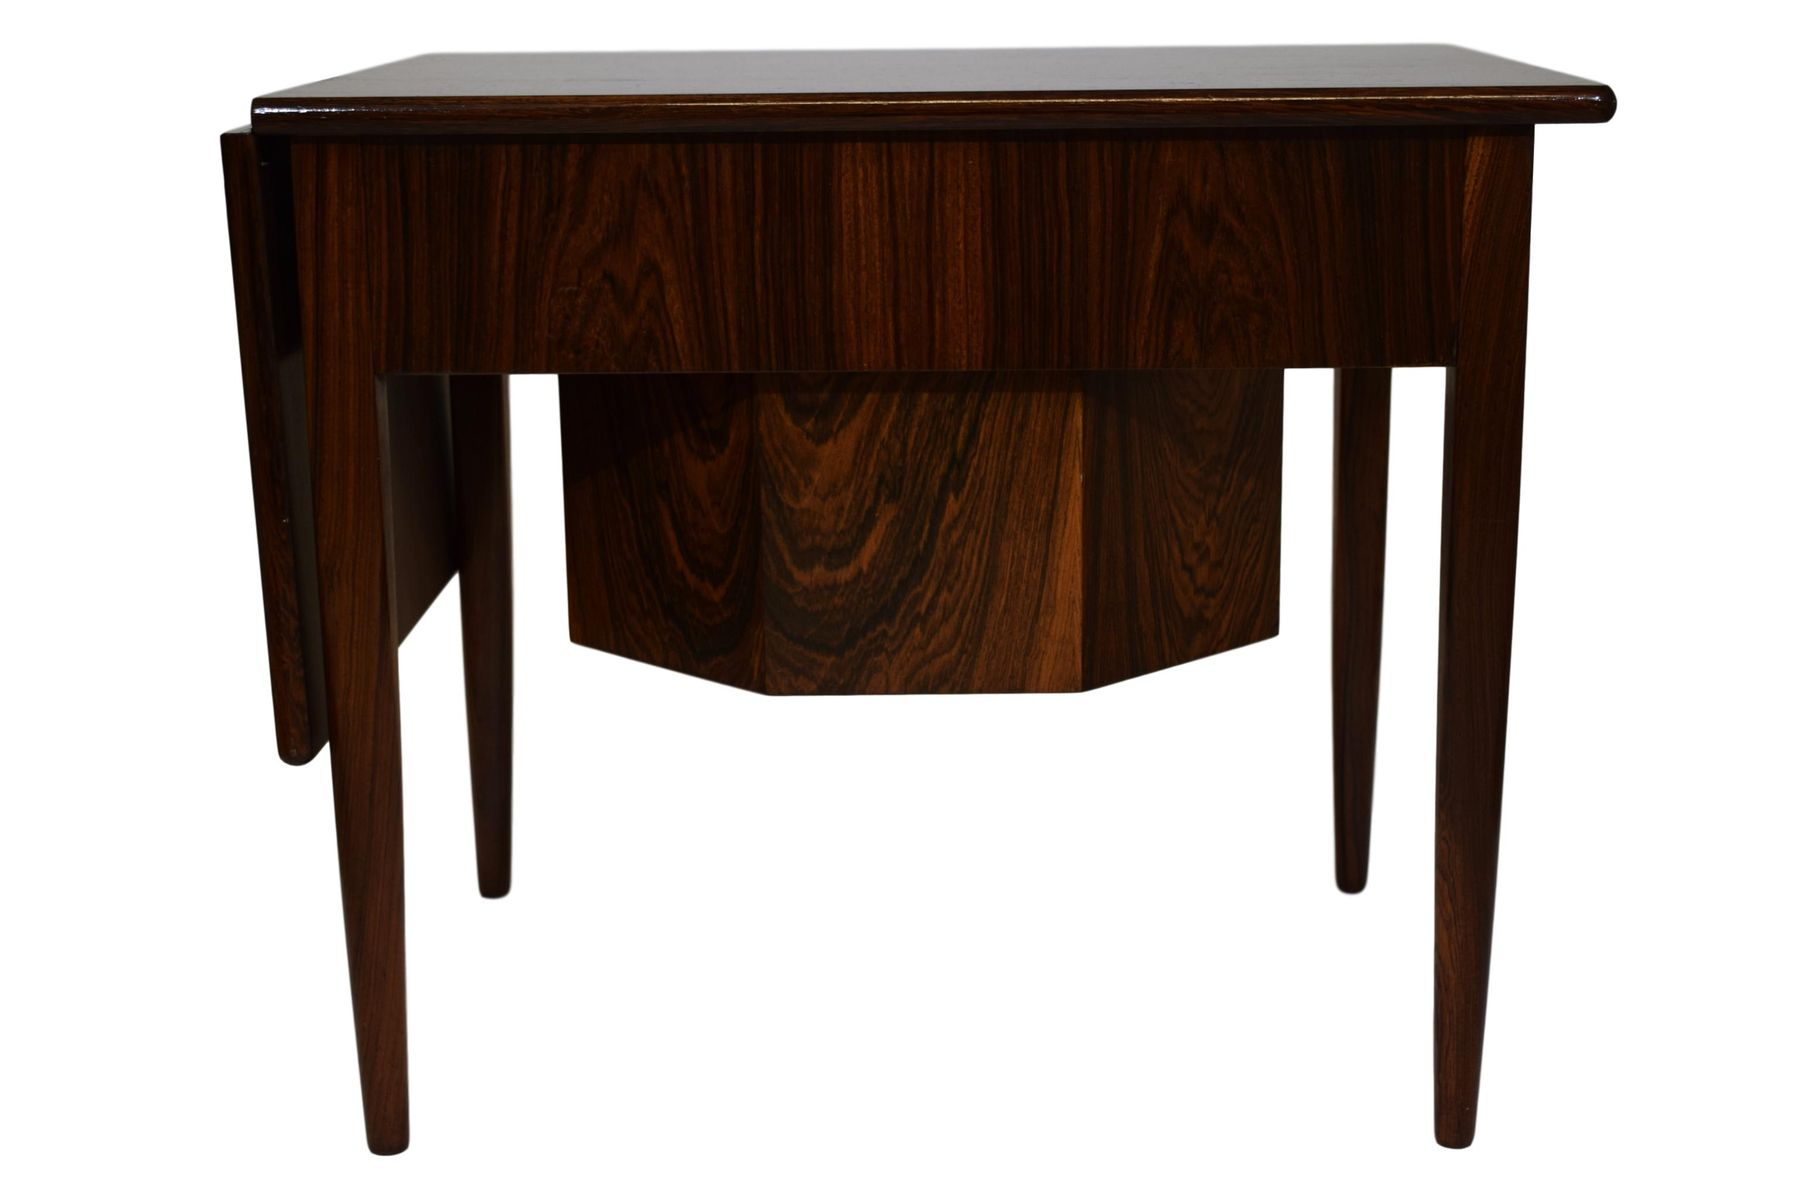 Mid Century Rosewood Veneer Sewing Table With Drop Leaf By Johannes Andersen